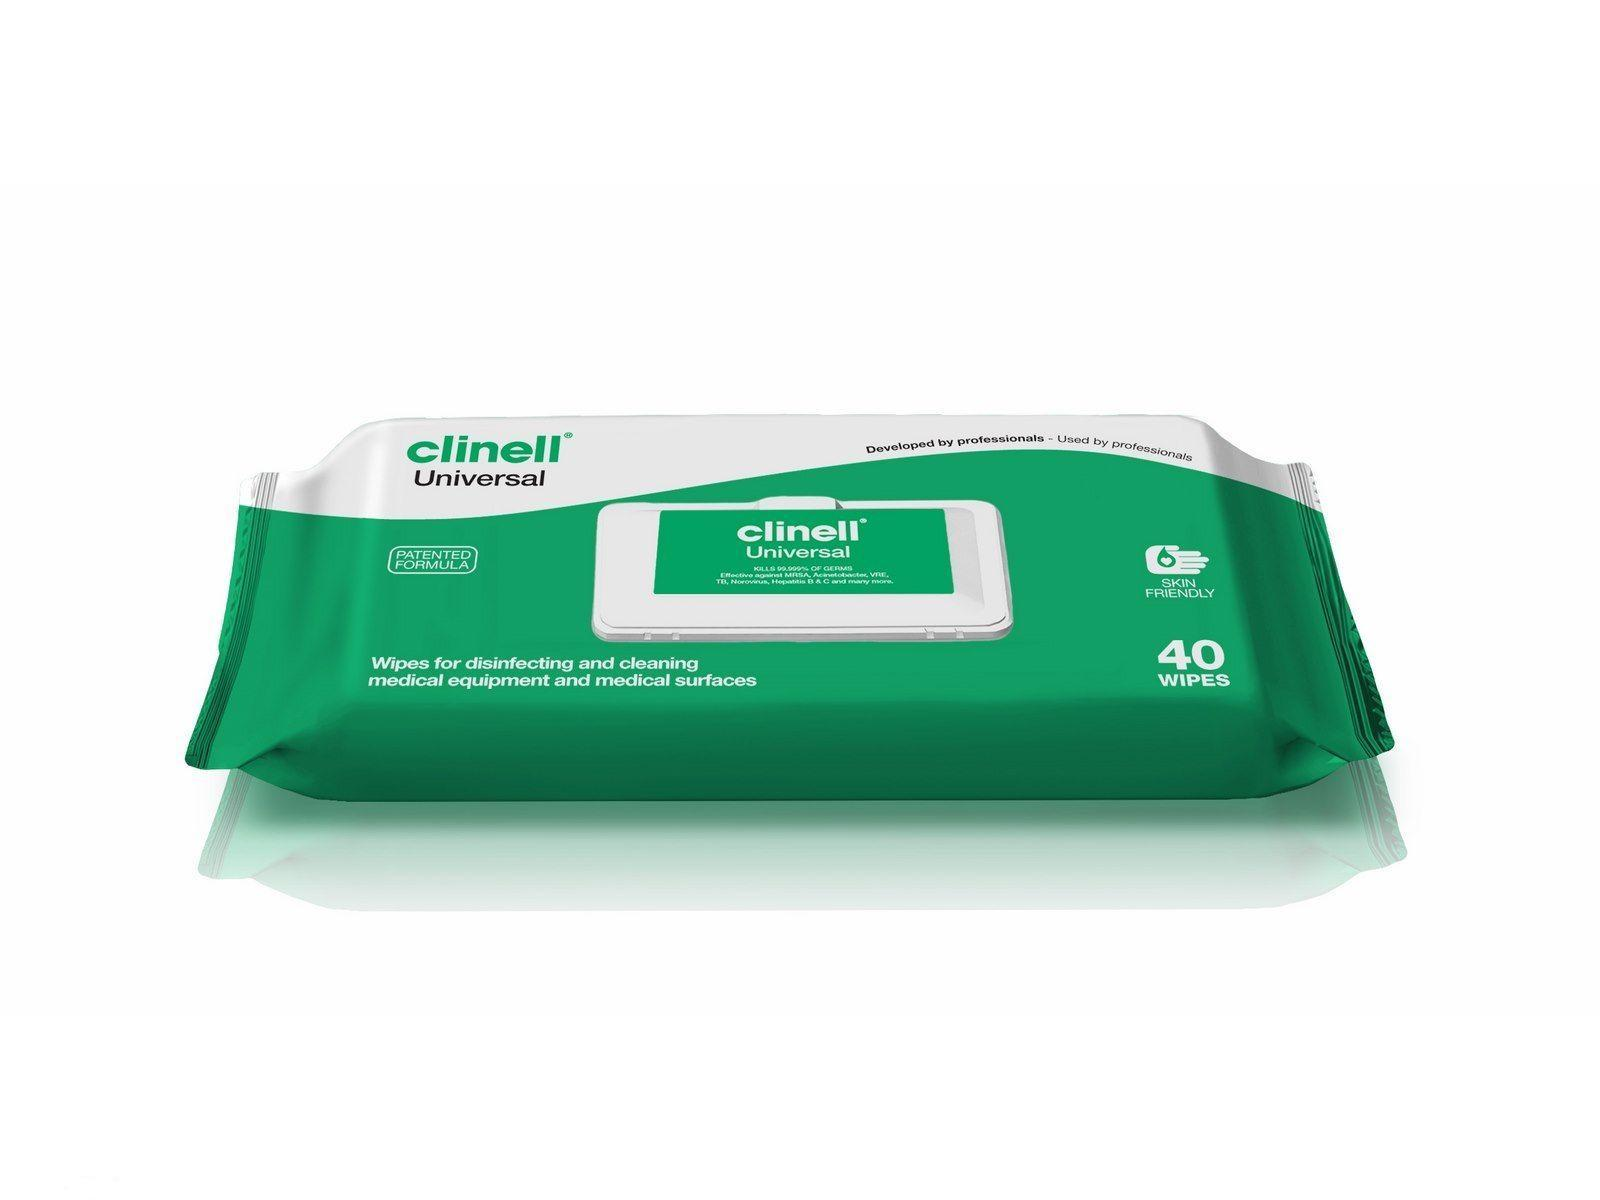 Pk 40 Clinell Universal Wipes